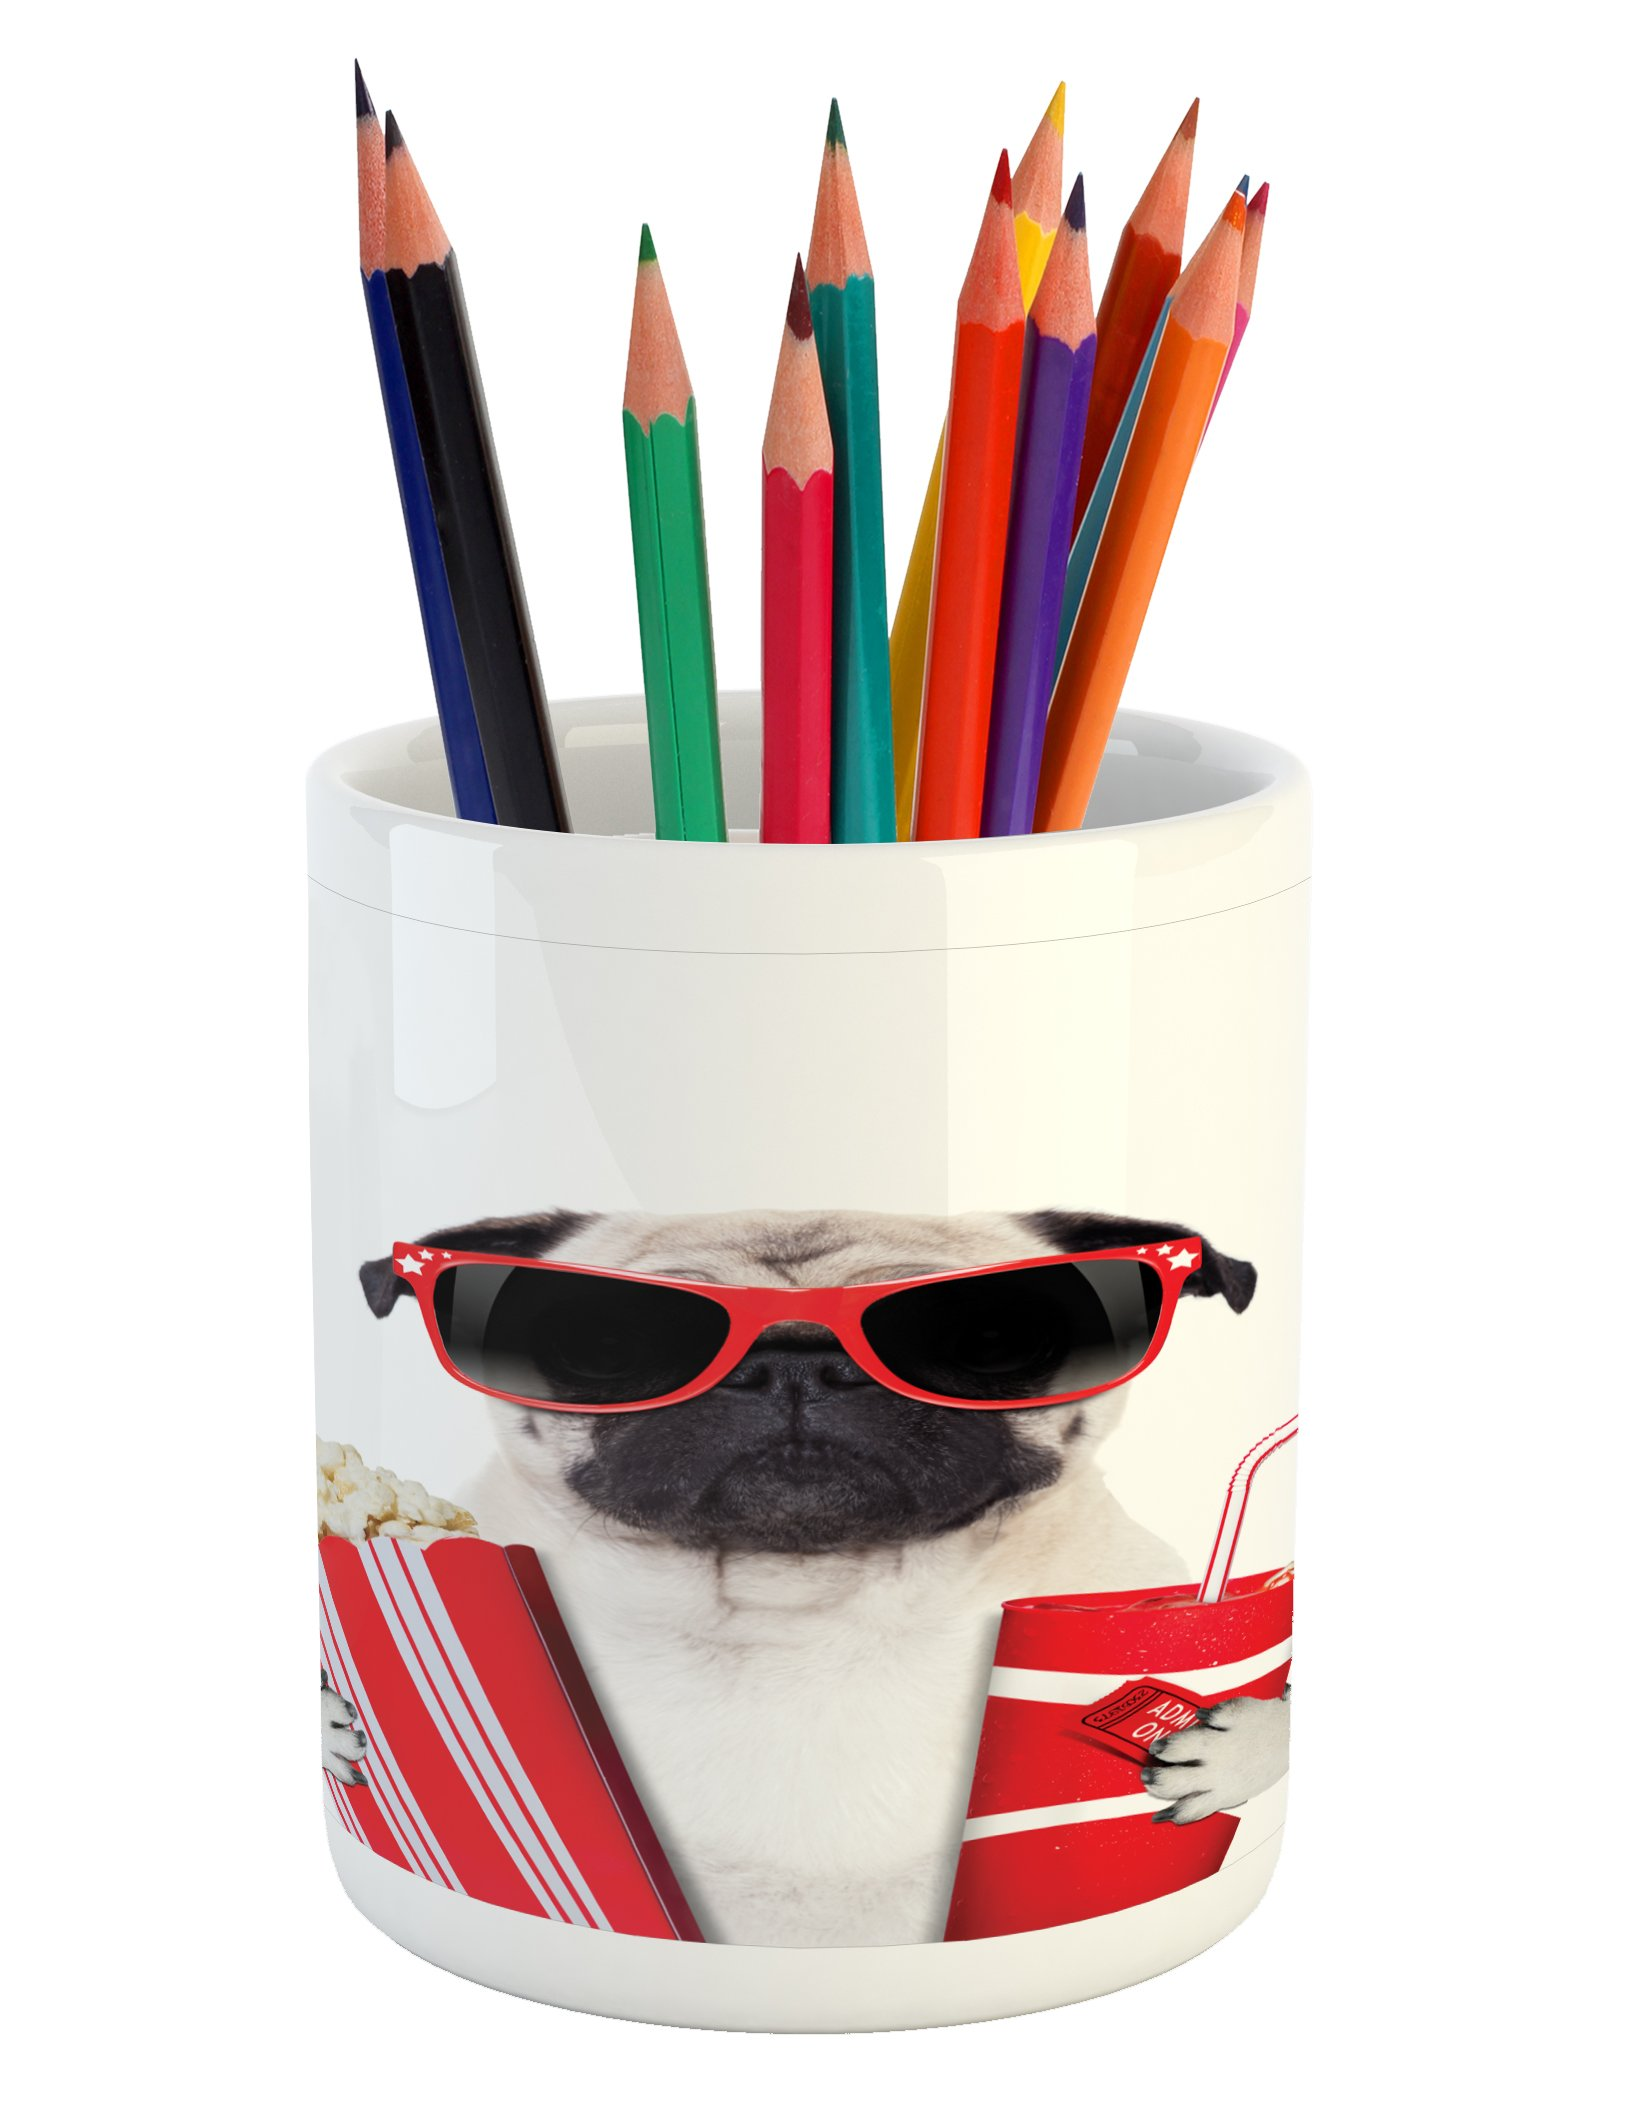 Ambesonne Pug Pencil Pen Holder, Going to the Movies Pug Dog Popcorn Soft Drink Movie Star Glasses Animal Fun Image, Printed Ceramic Pencil Pen Holder for Desk Office Accessory, Cream Red Black